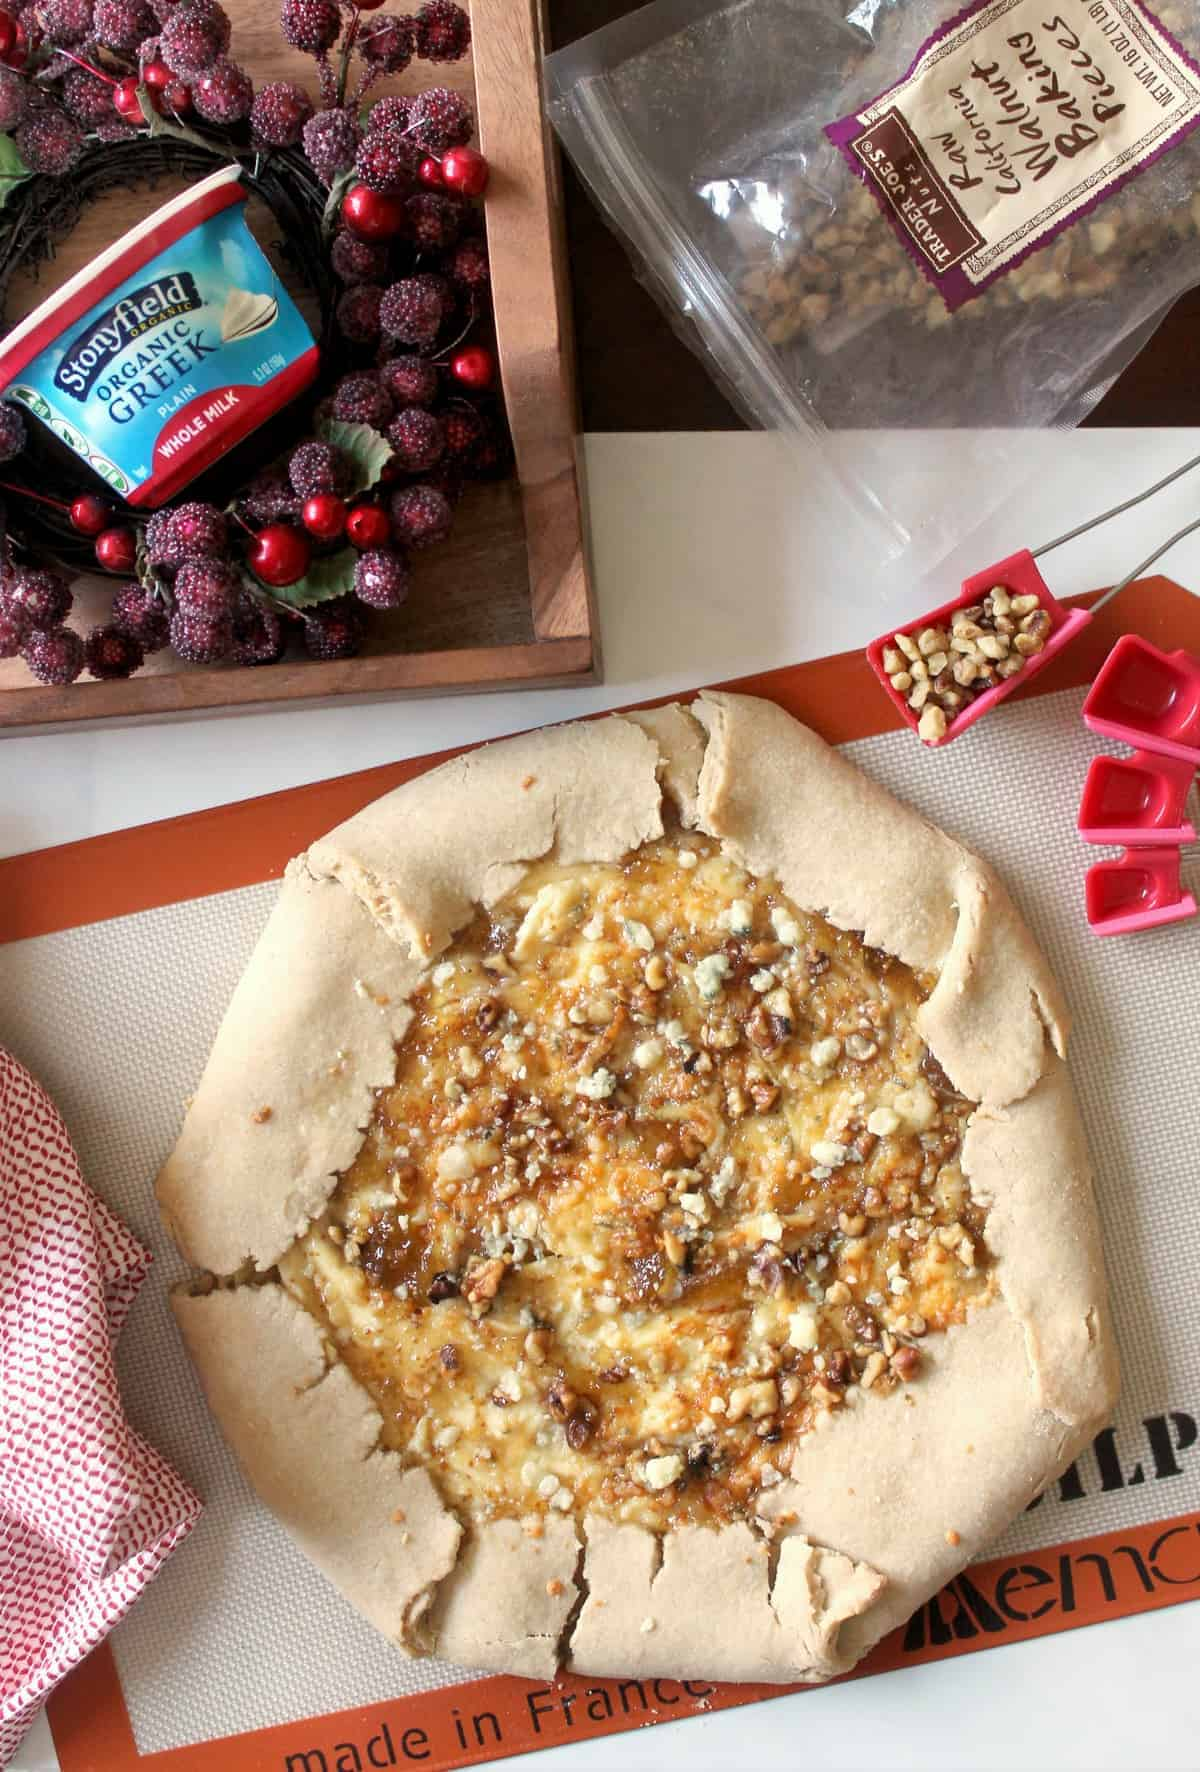 Gorgonzola & Fig Jam Crostata. A tender, rustic tart slathered with a creamy filling and fig jam swirl, topped with savory Gorgonzola cheese and walnuts.